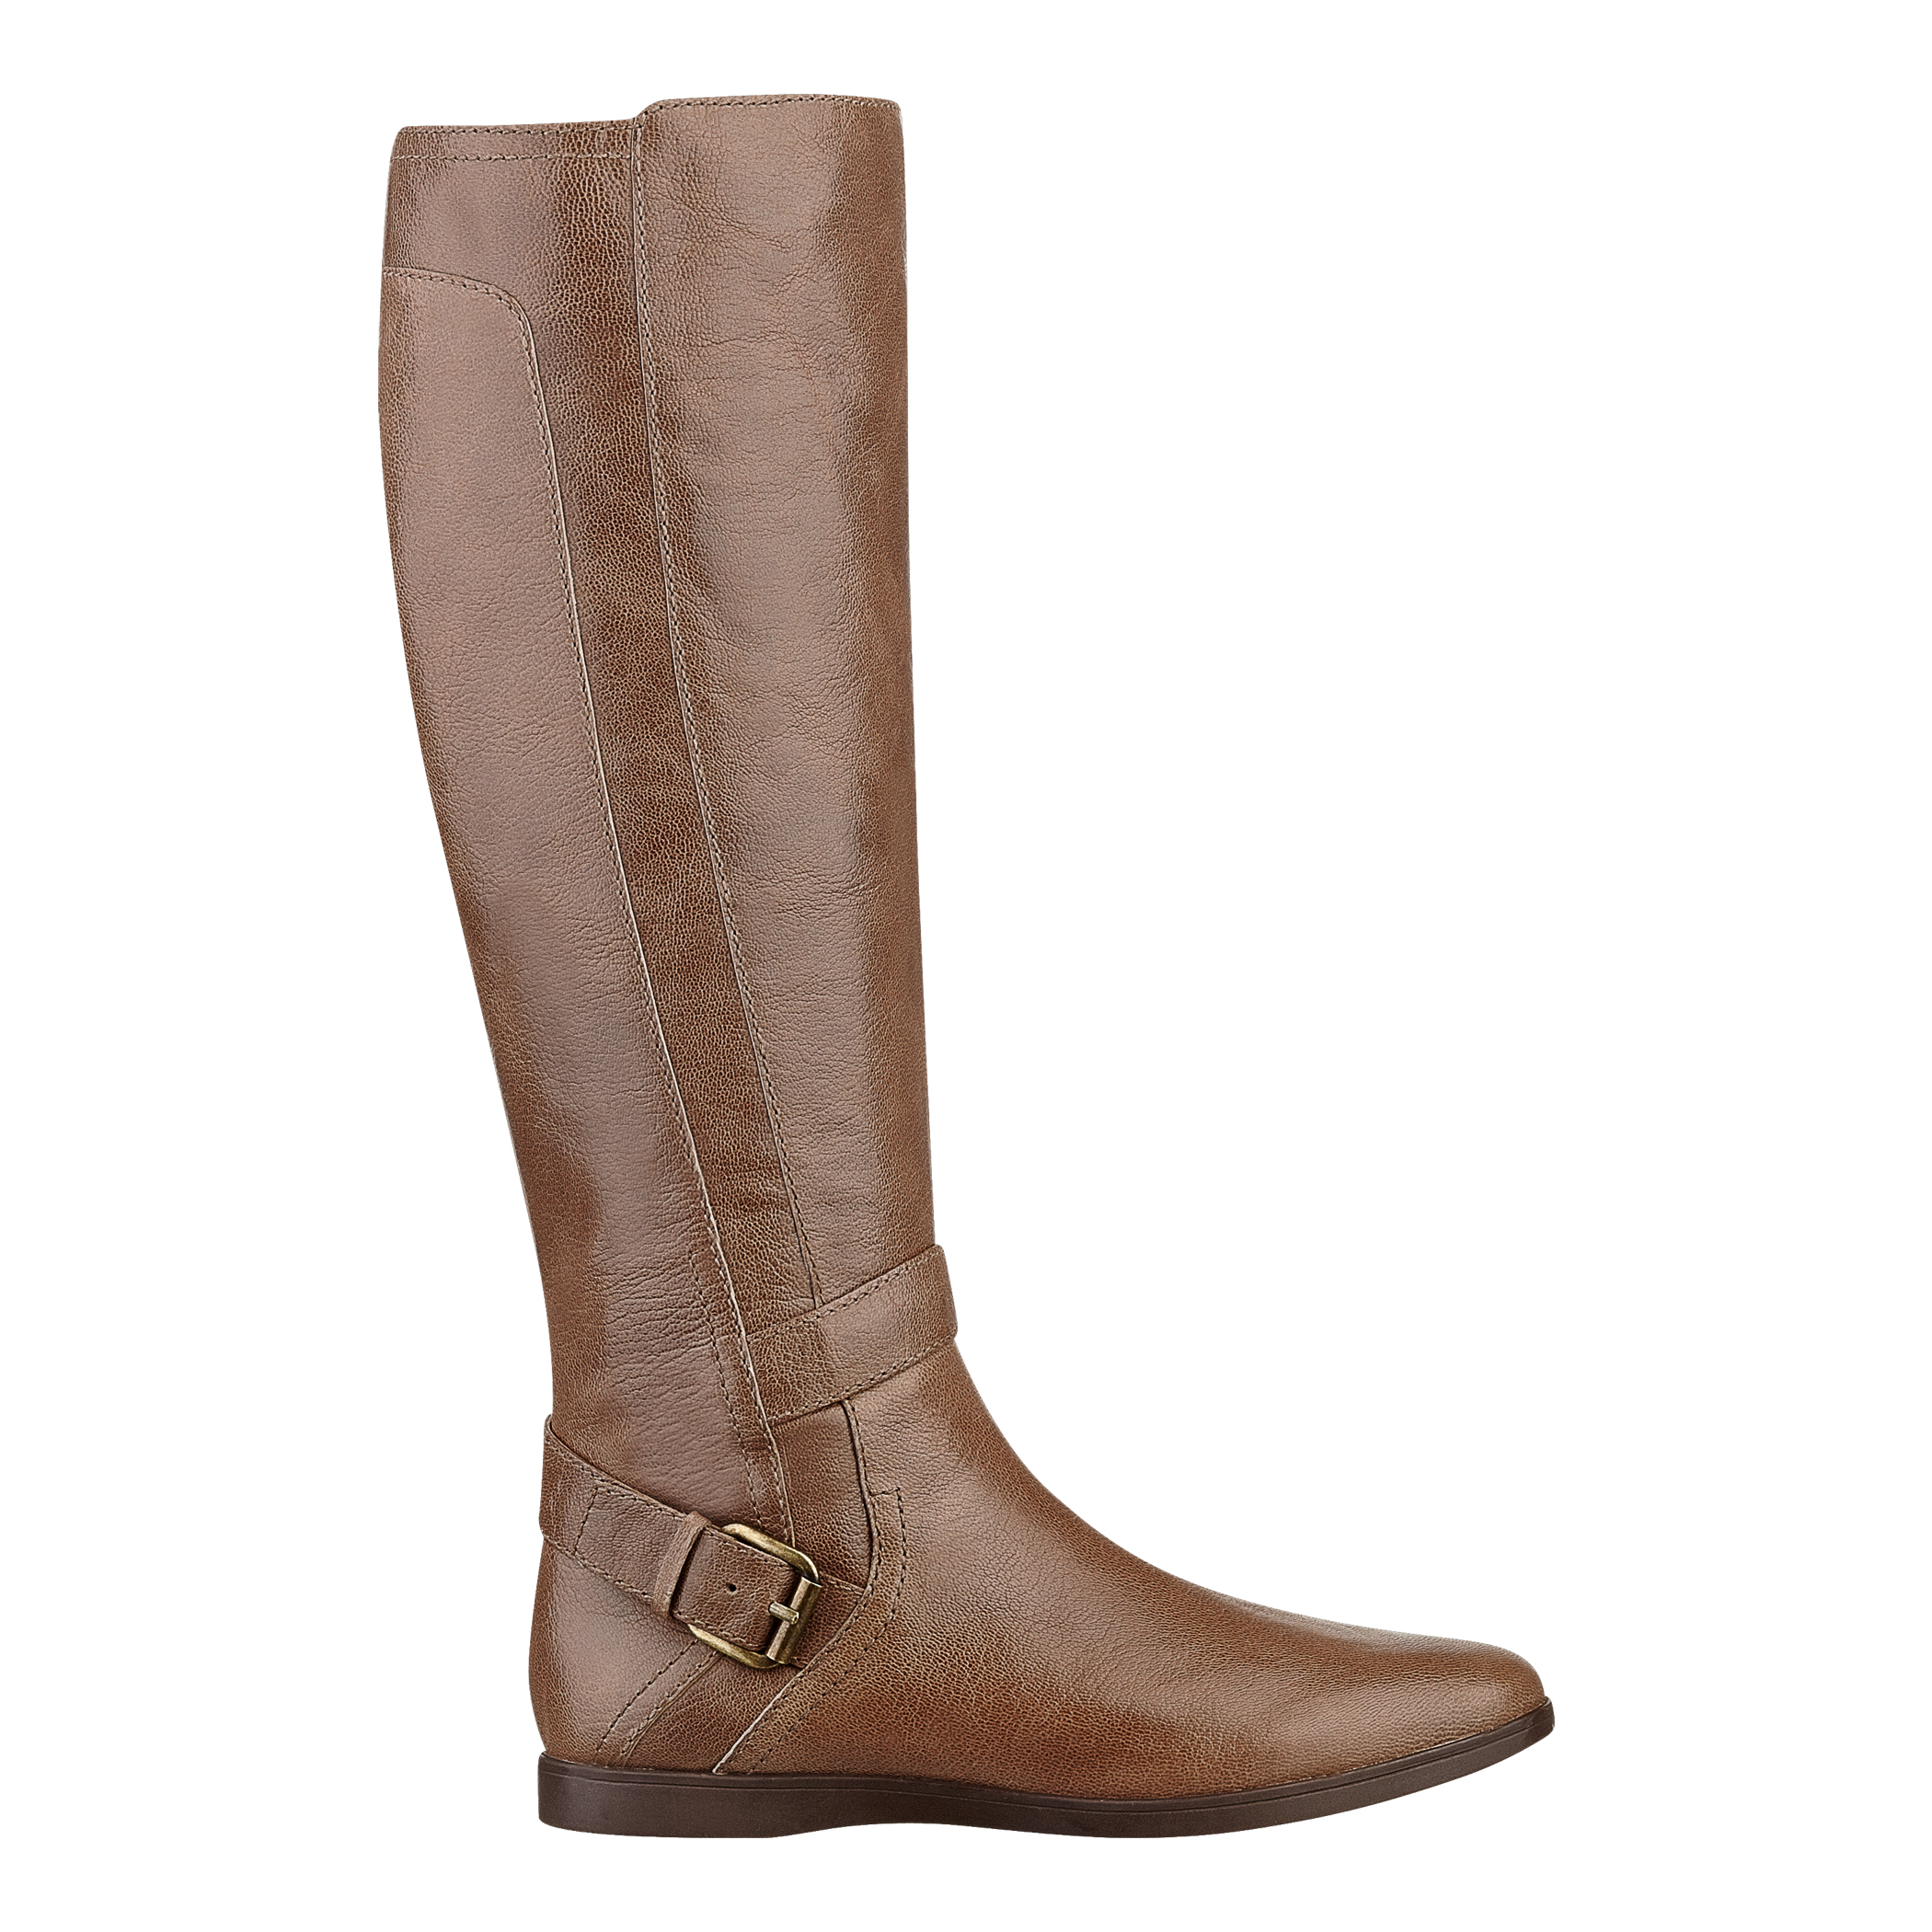 nine west toxicatn boot in brown taupe leather lyst